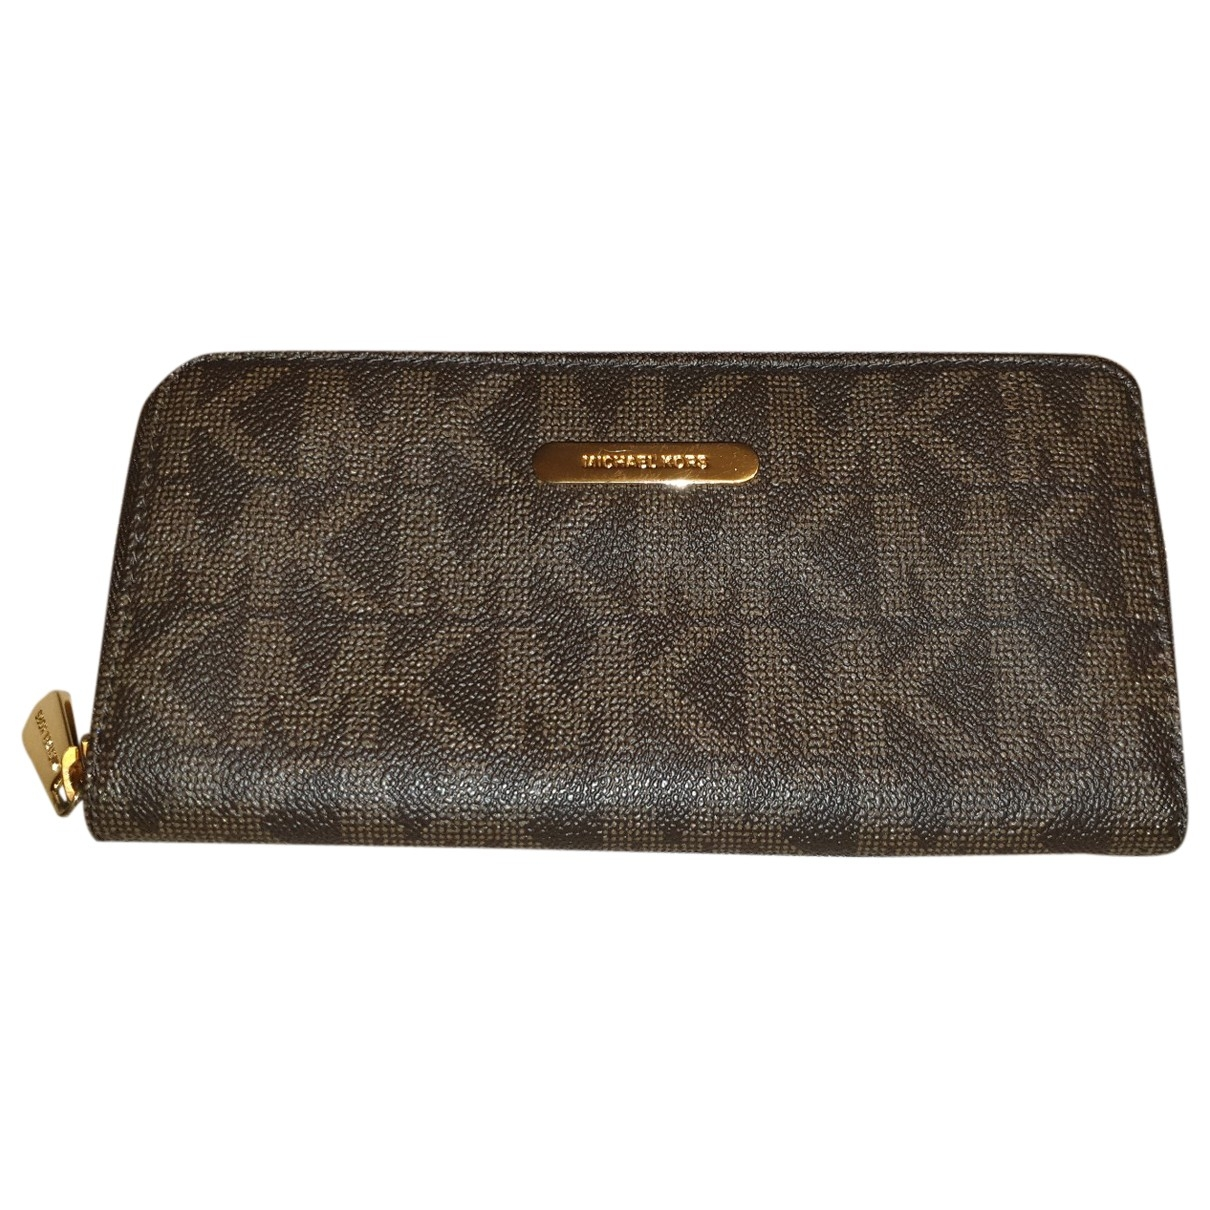 Michael Kors \N Brown Leather Clutch bag for Women \N